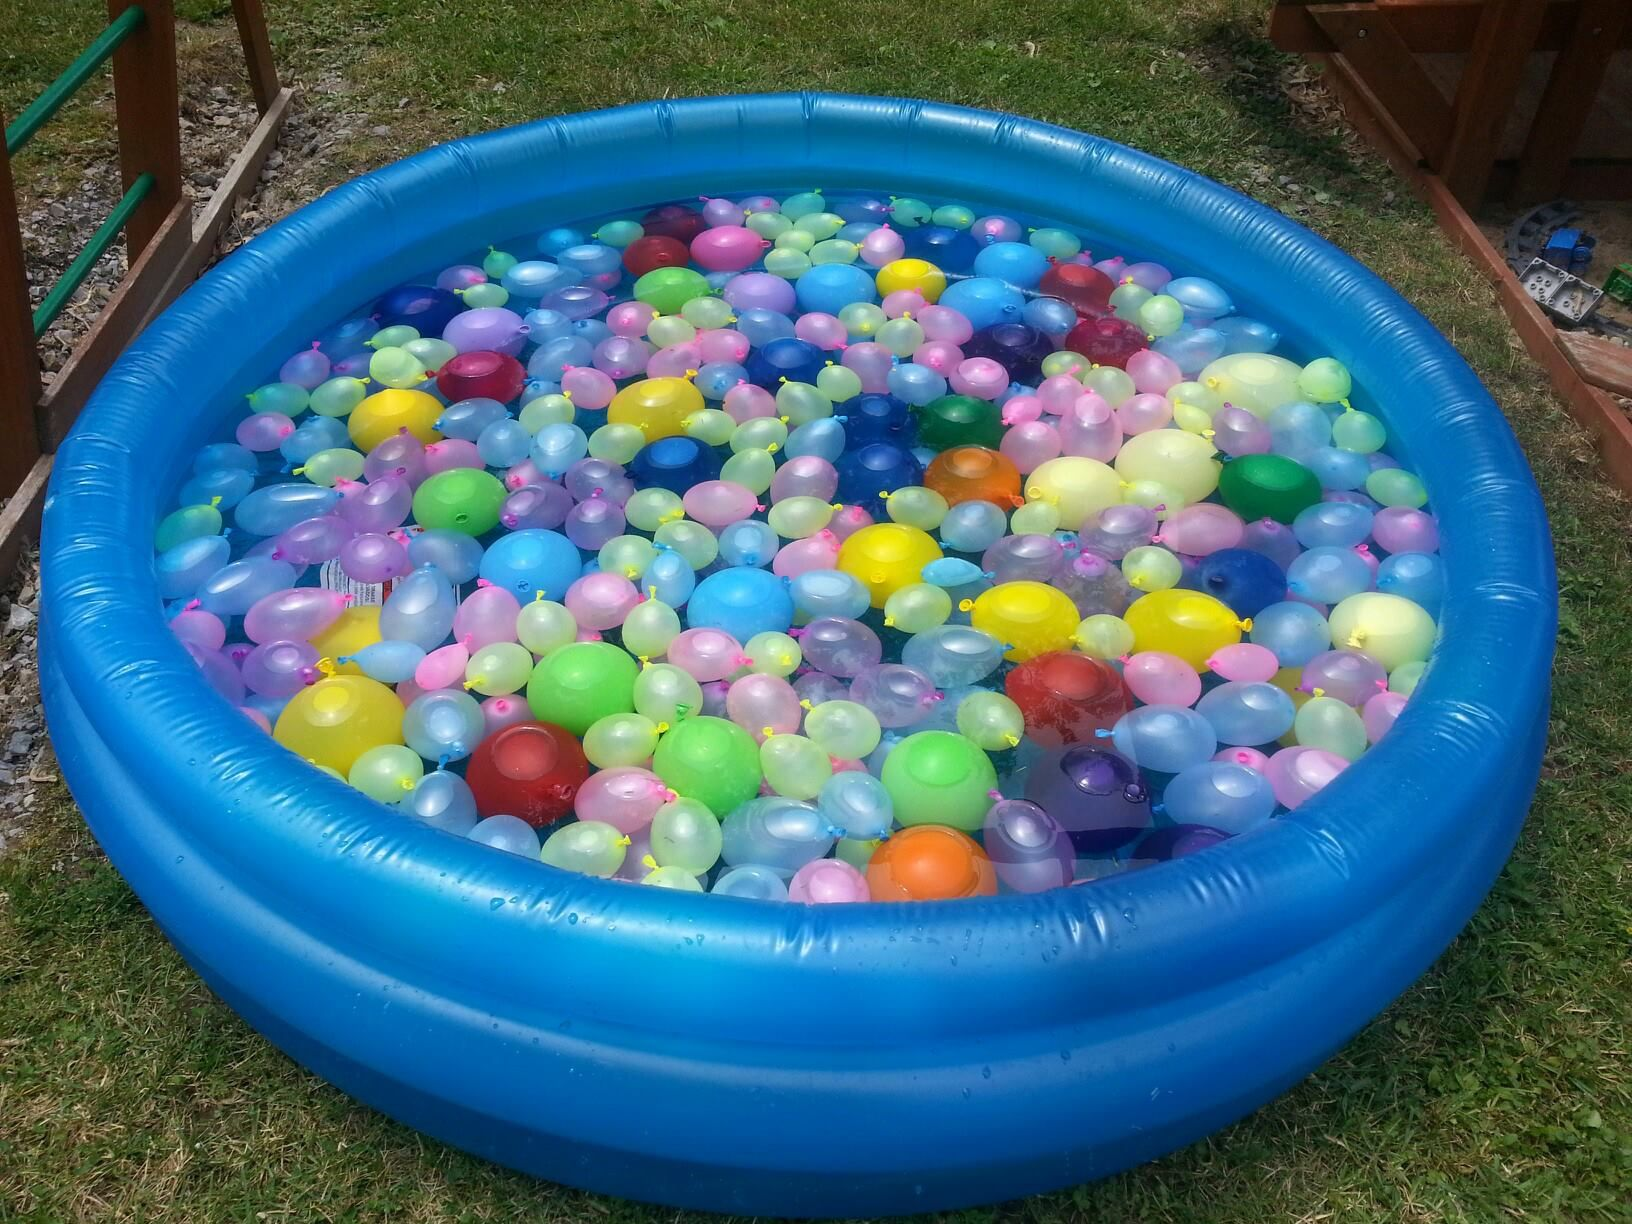 a pool full of water balloon fun care for small children that may put a